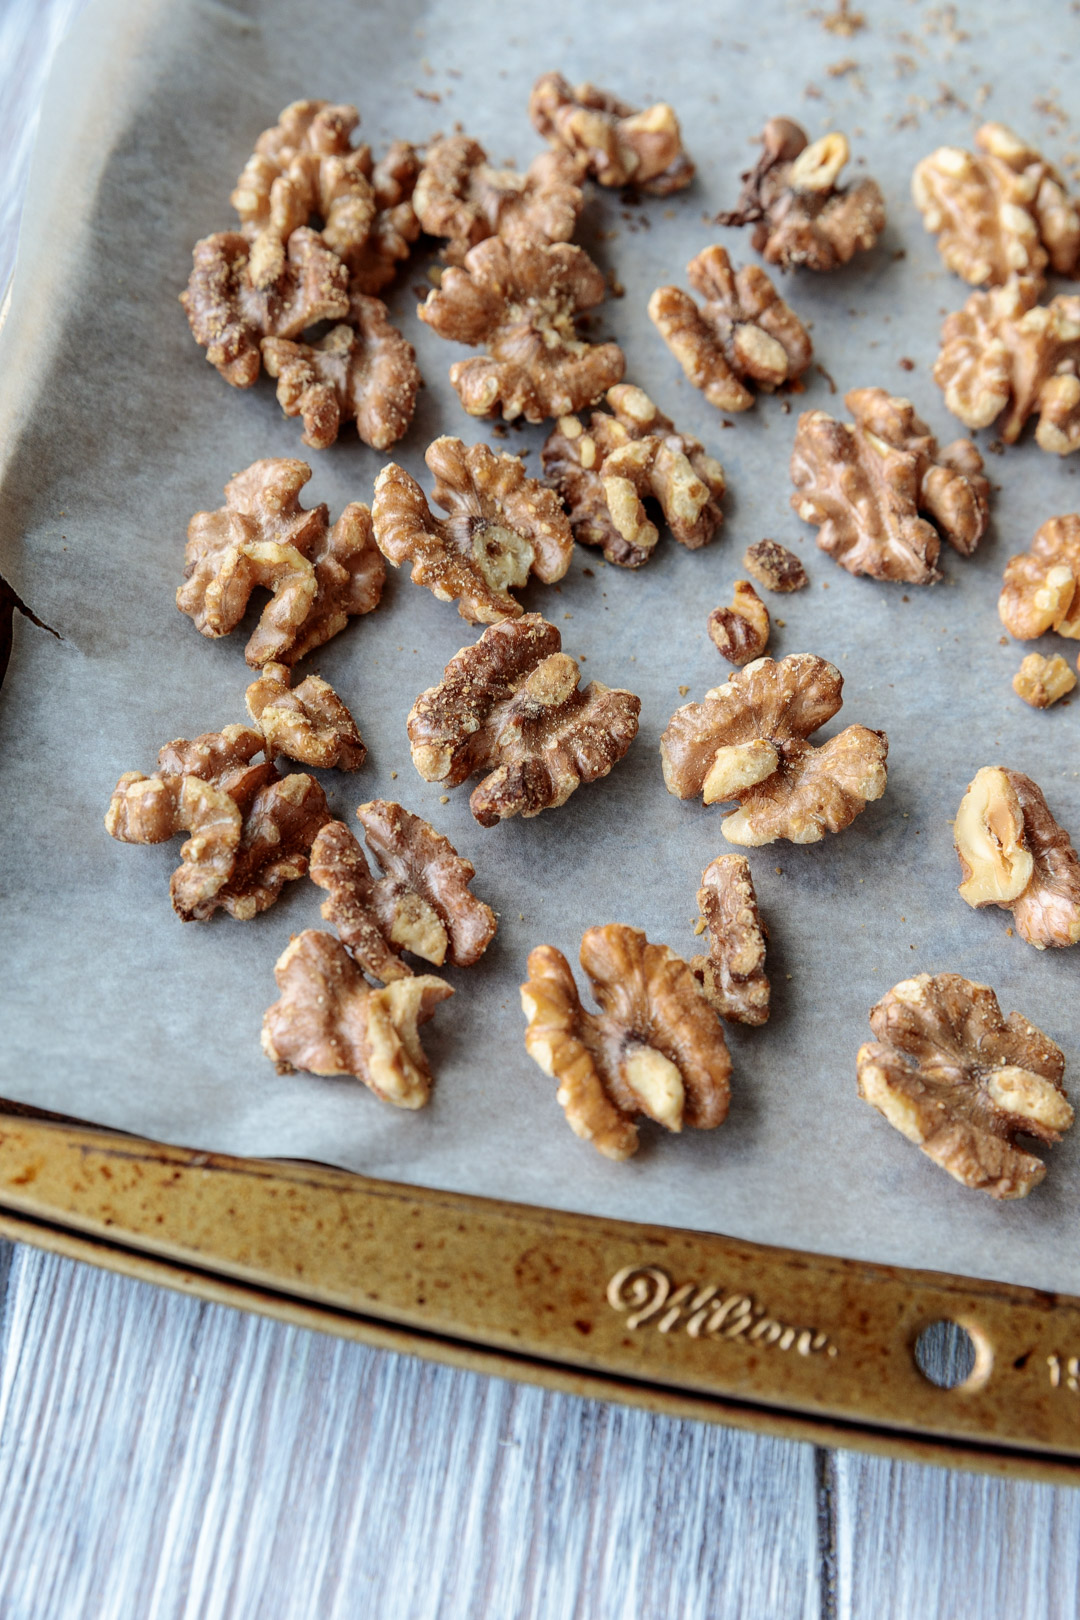 Roasted Walnuts for Pastry Crust